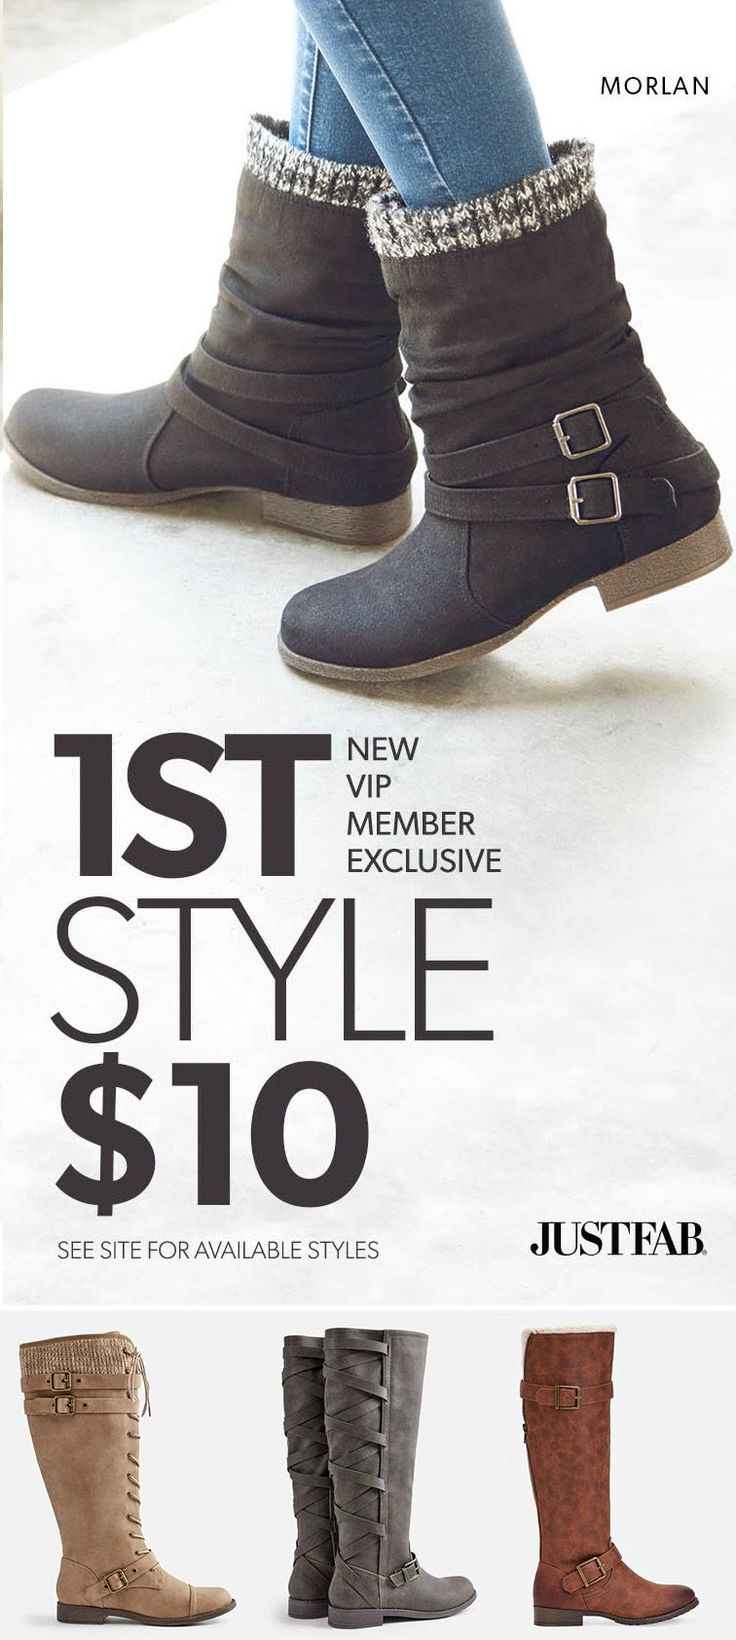 Hey Girl! Check Out Our Fall Favorites - Get Your First Pair of Boots for Only $10! Take the 60 Second Style Quiz to get this exclusive offer!